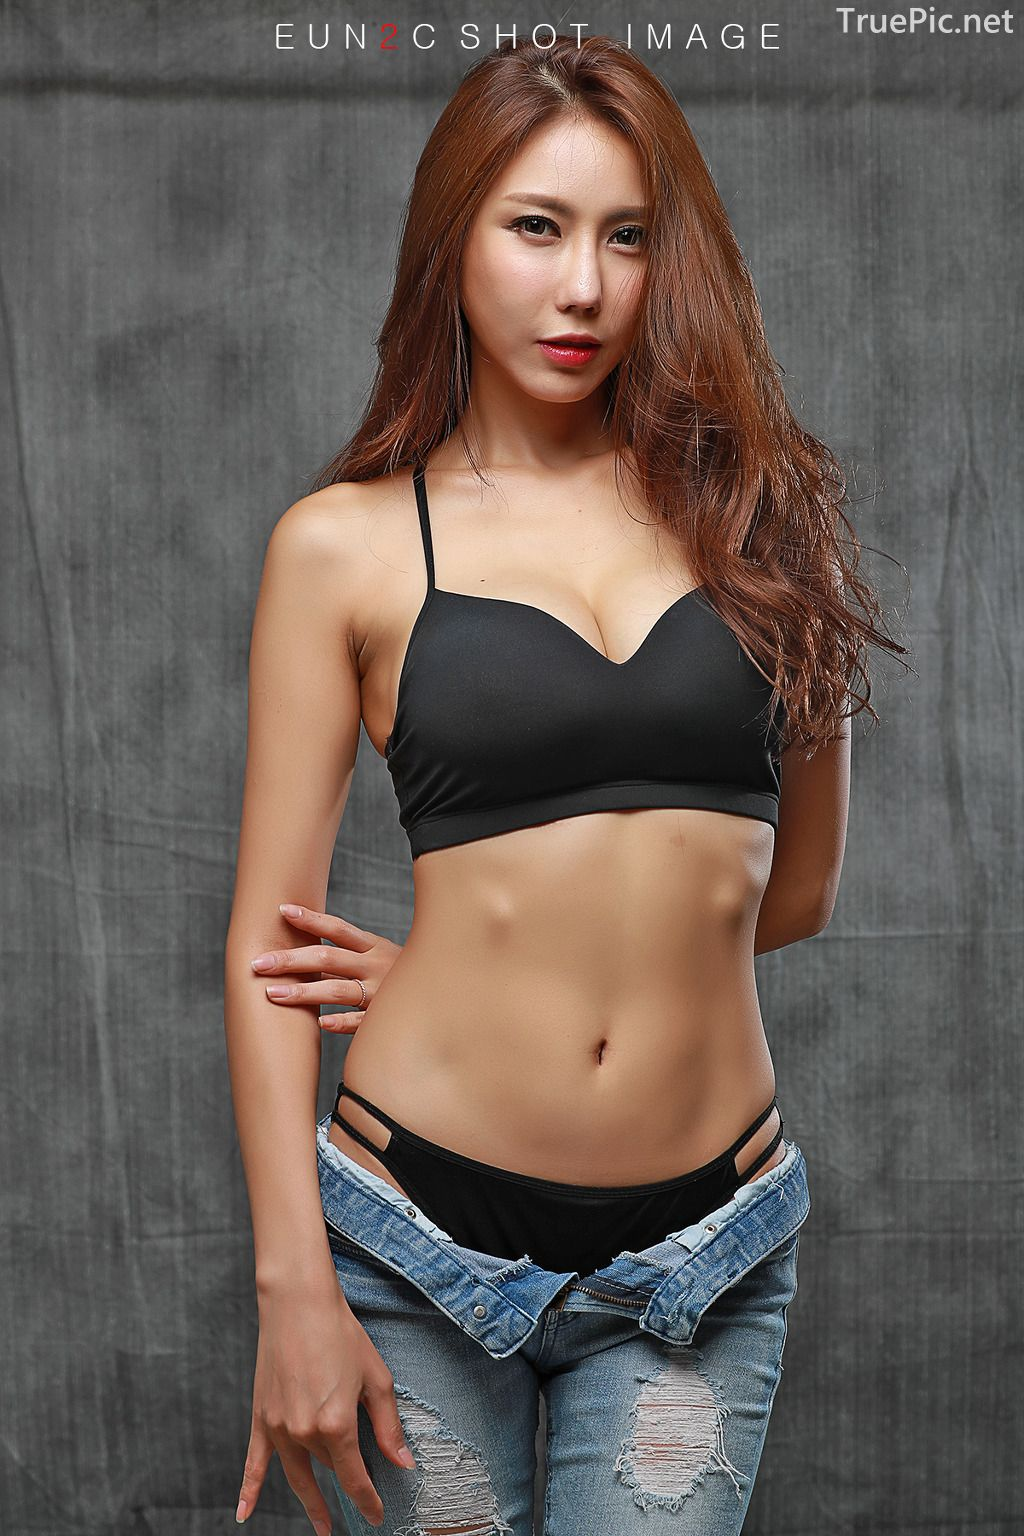 Image-Korean-model-Choi-Ye-Rok-Back-Lingerie-and-Jean-TruePic.net- Picture-7